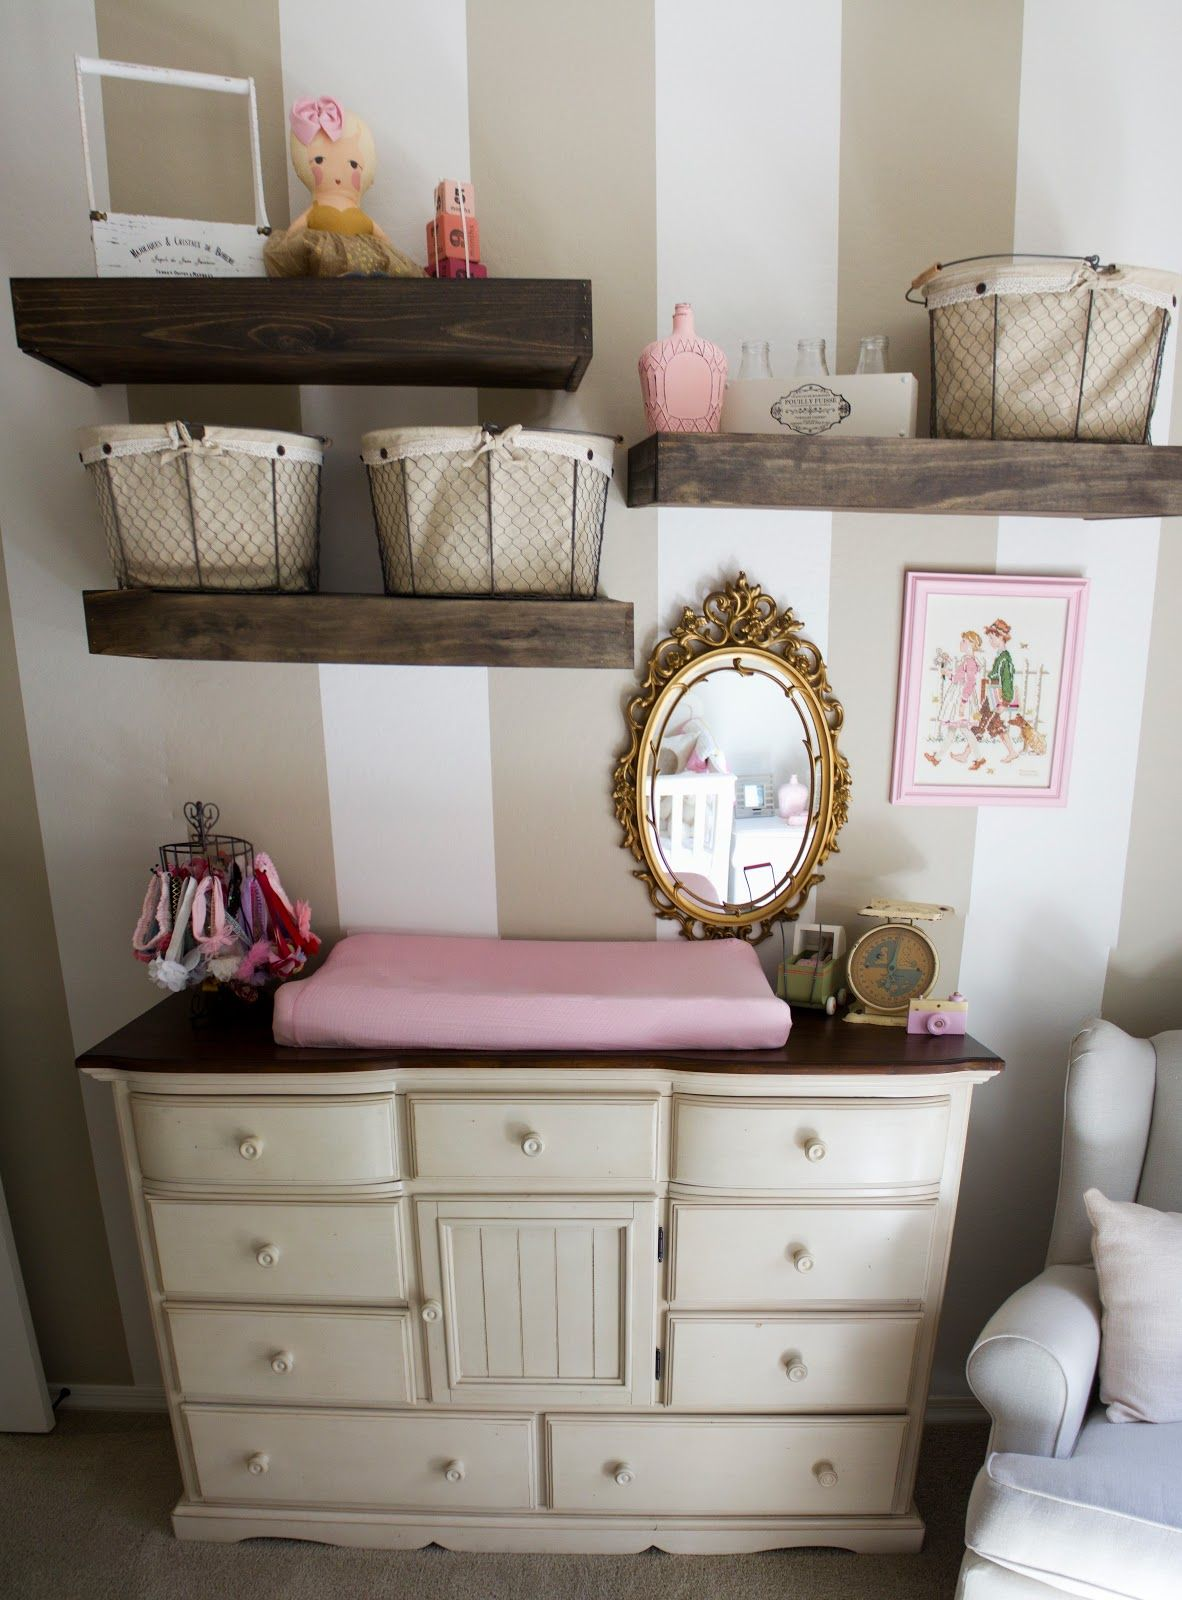 Baby Room Accessories: Life In Hearts: Anderson's Nursery!